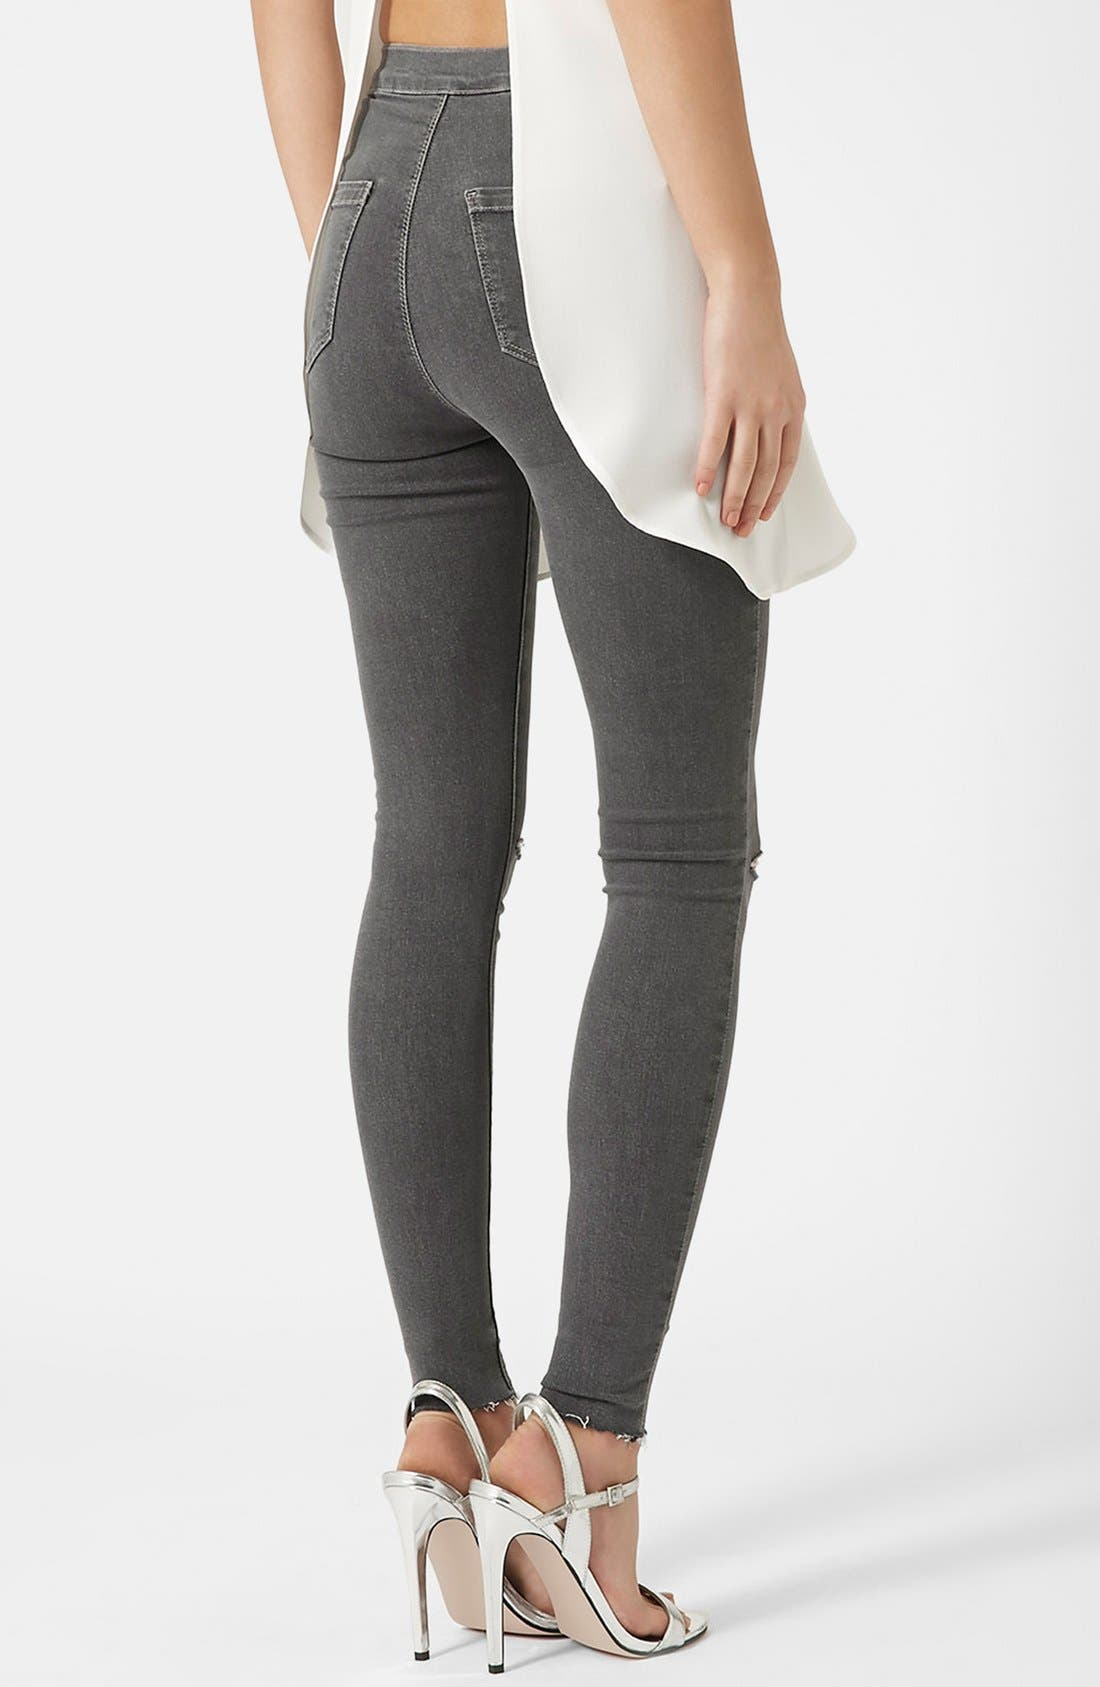 Alternate Image 2  - Topshop Moto 'Joni' Ripped Skinny Jeans (Grey) Regular and Short